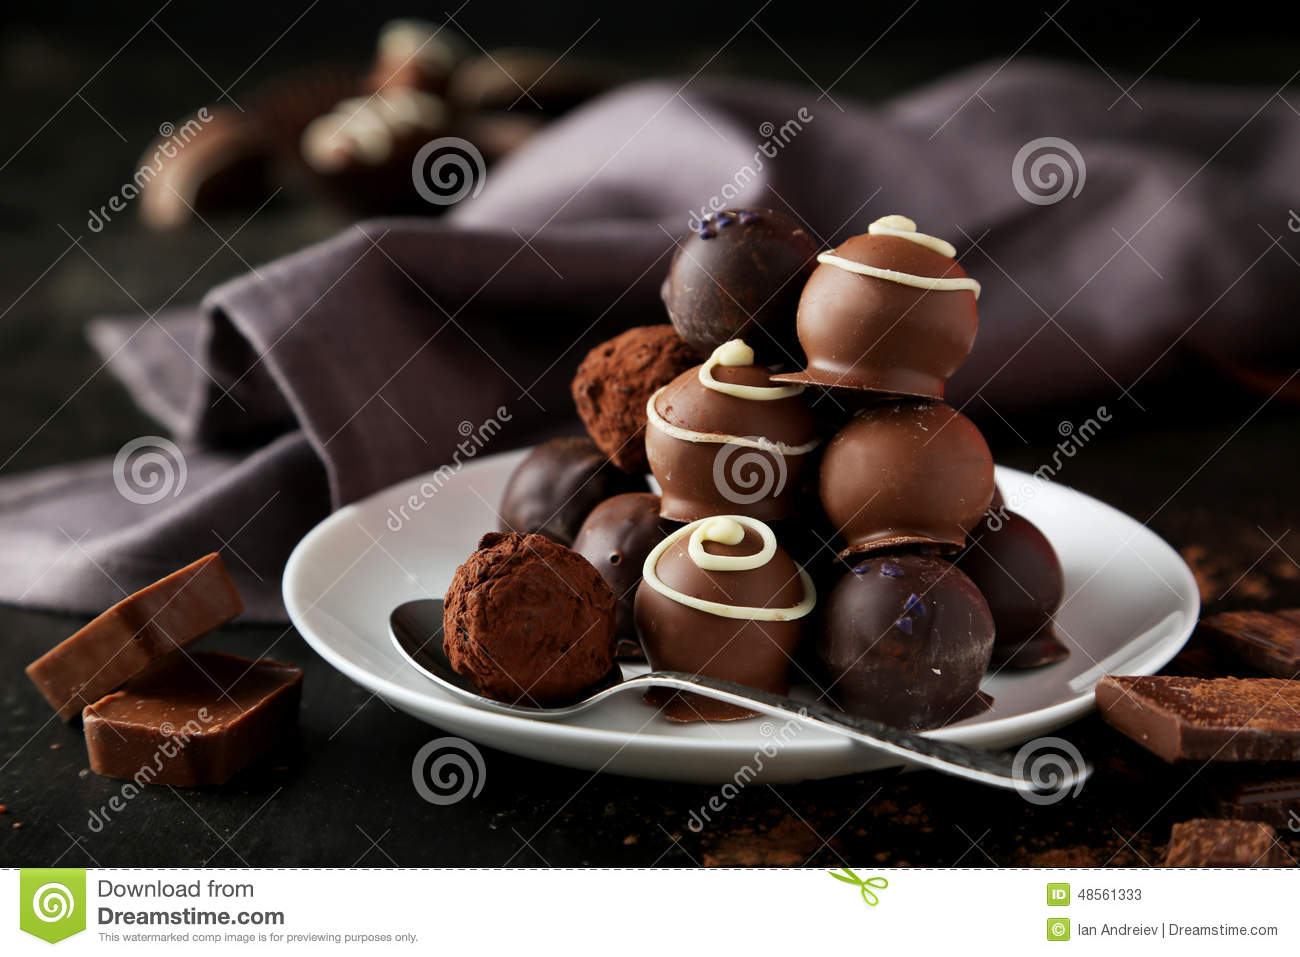 Chocolates on plate on the black background